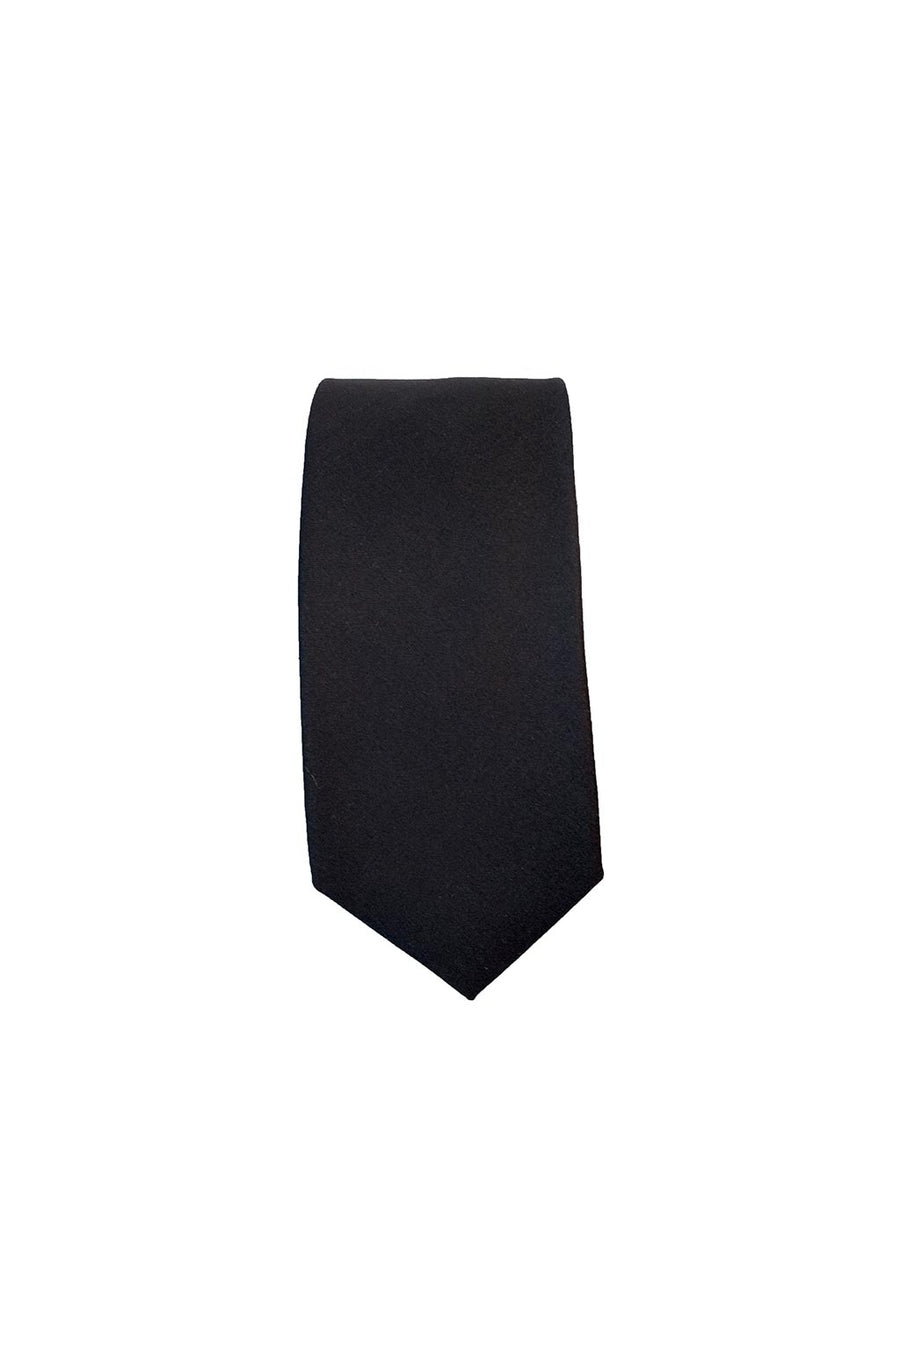 MEN'S TIE (ALL COLOURS)